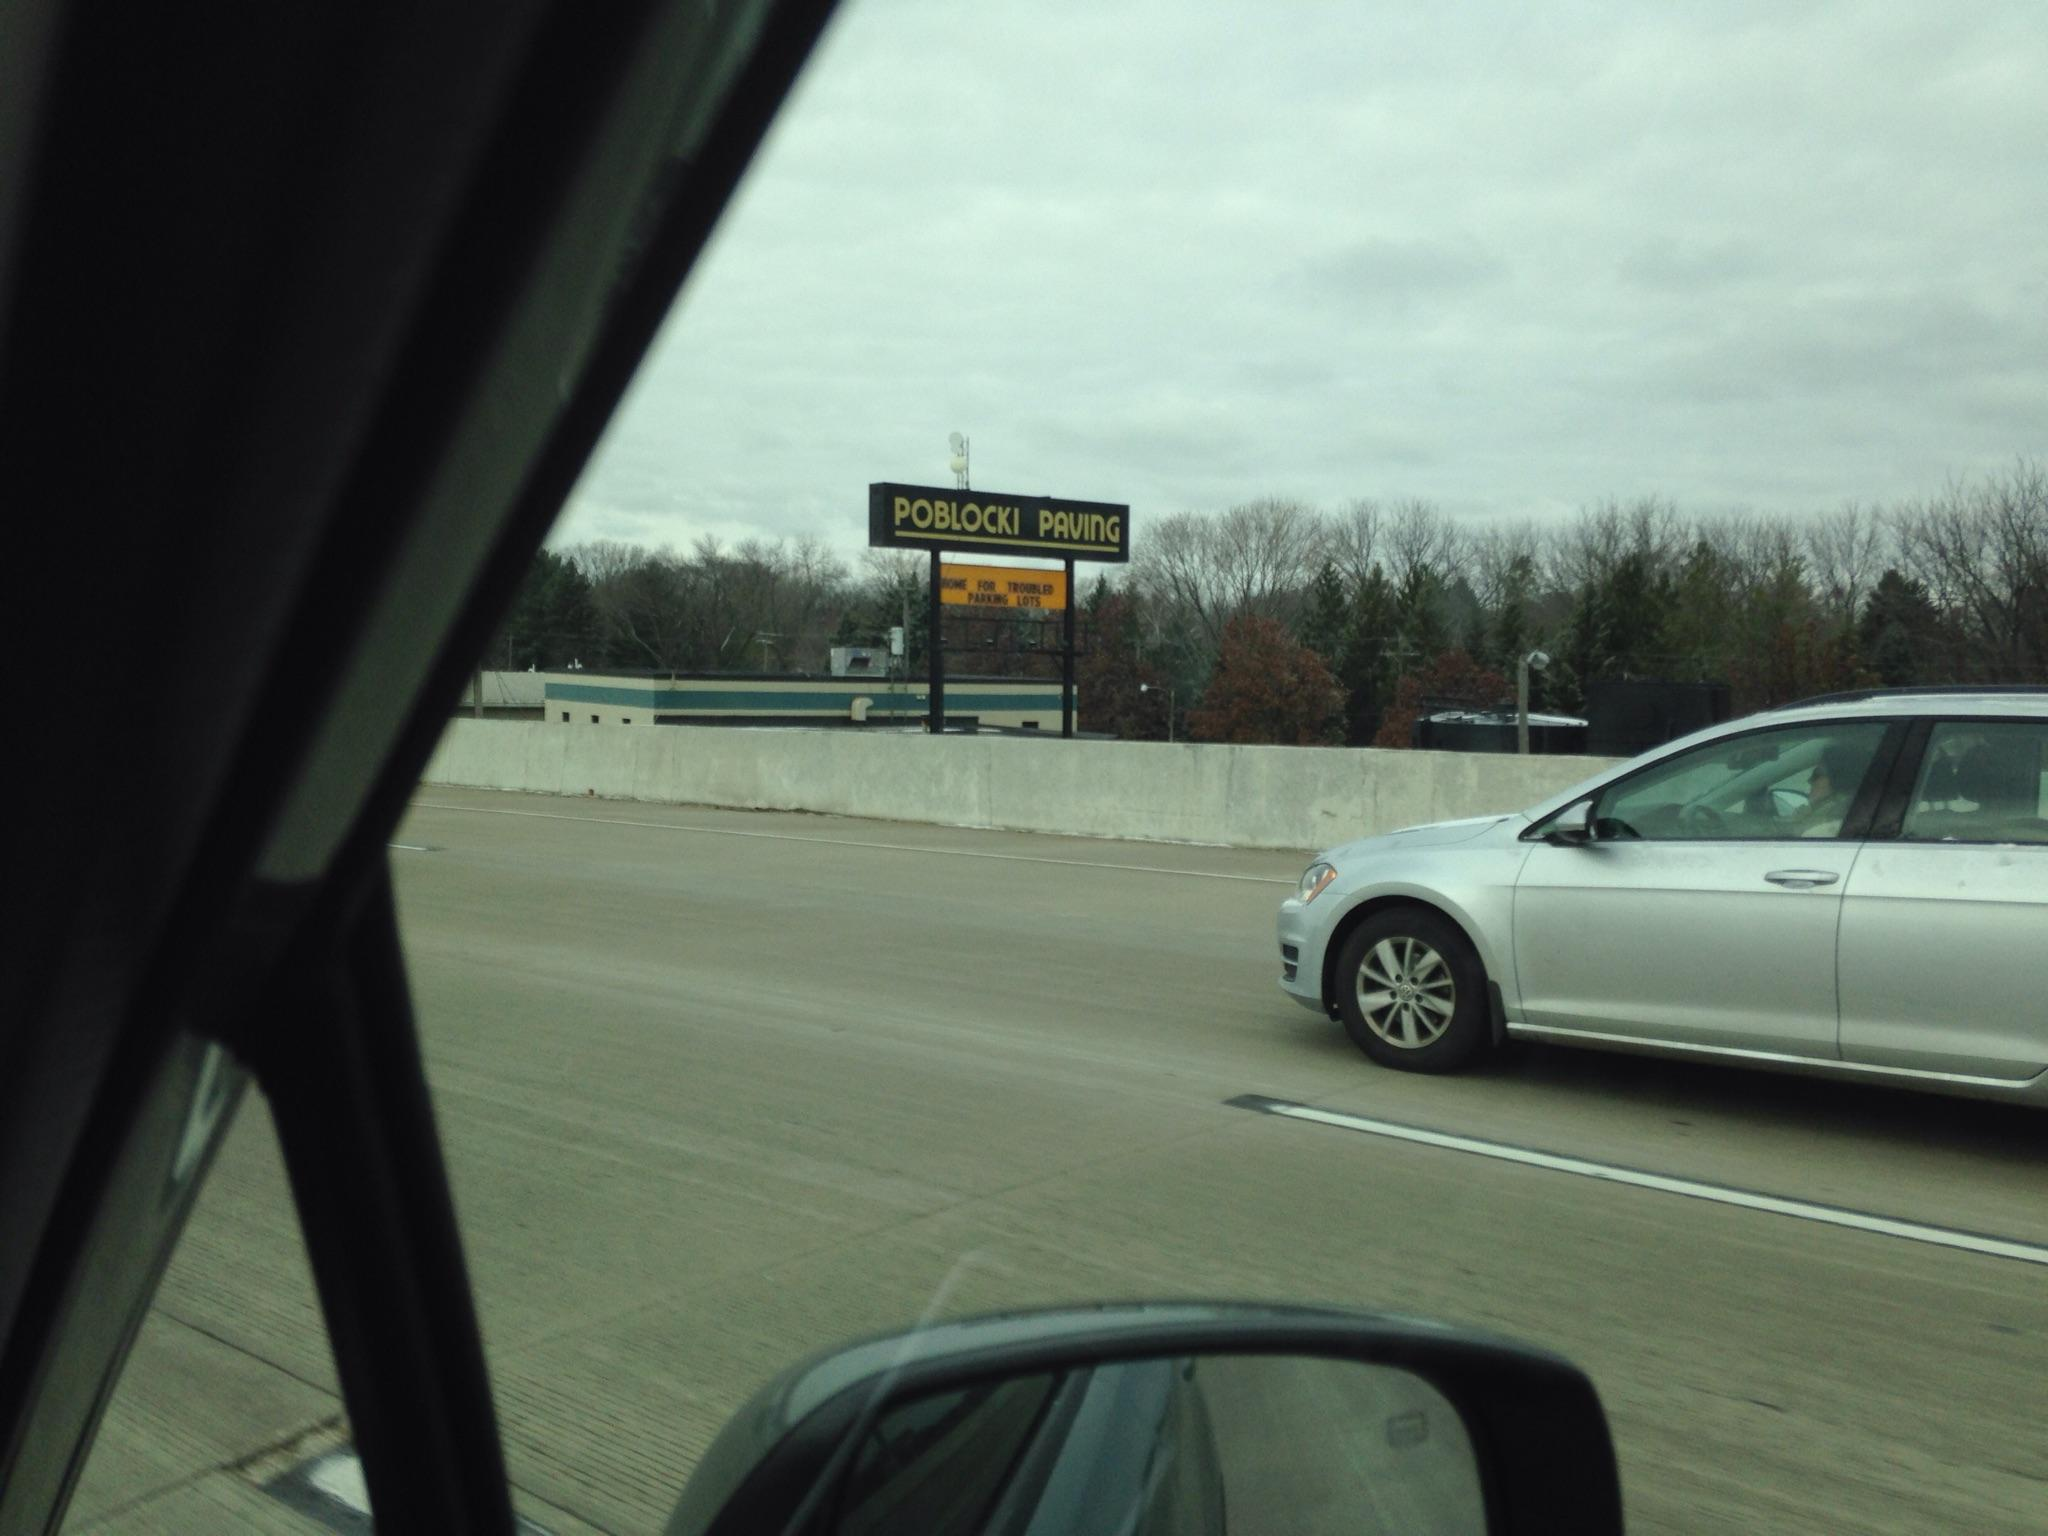 Poblocki Paving: Rolling Puns For I-94 Commuters Since 1982